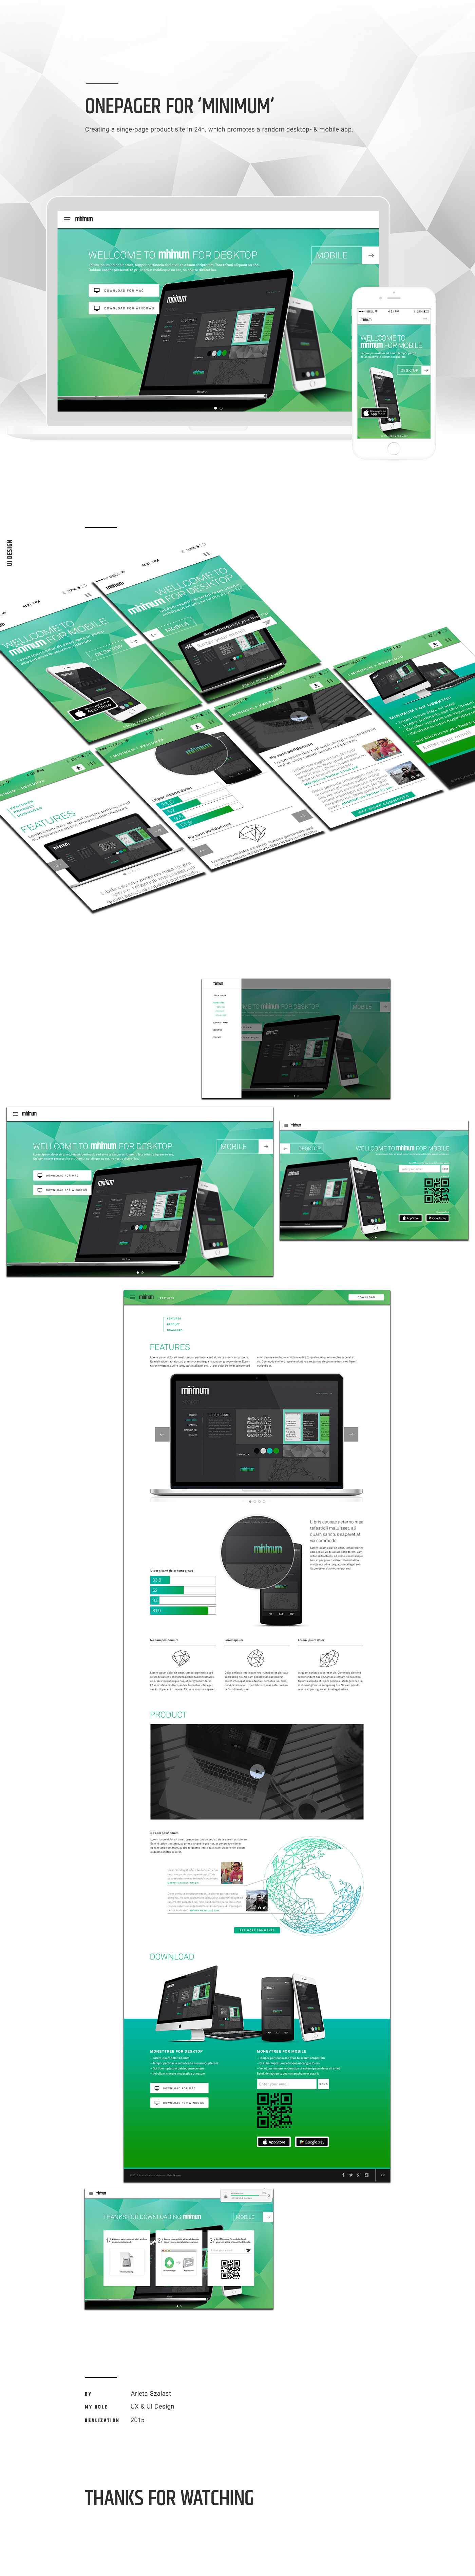 uxdesign uidesign interactiondesign Onepager Product Site desktop- & mobile app Responsive user experience UI